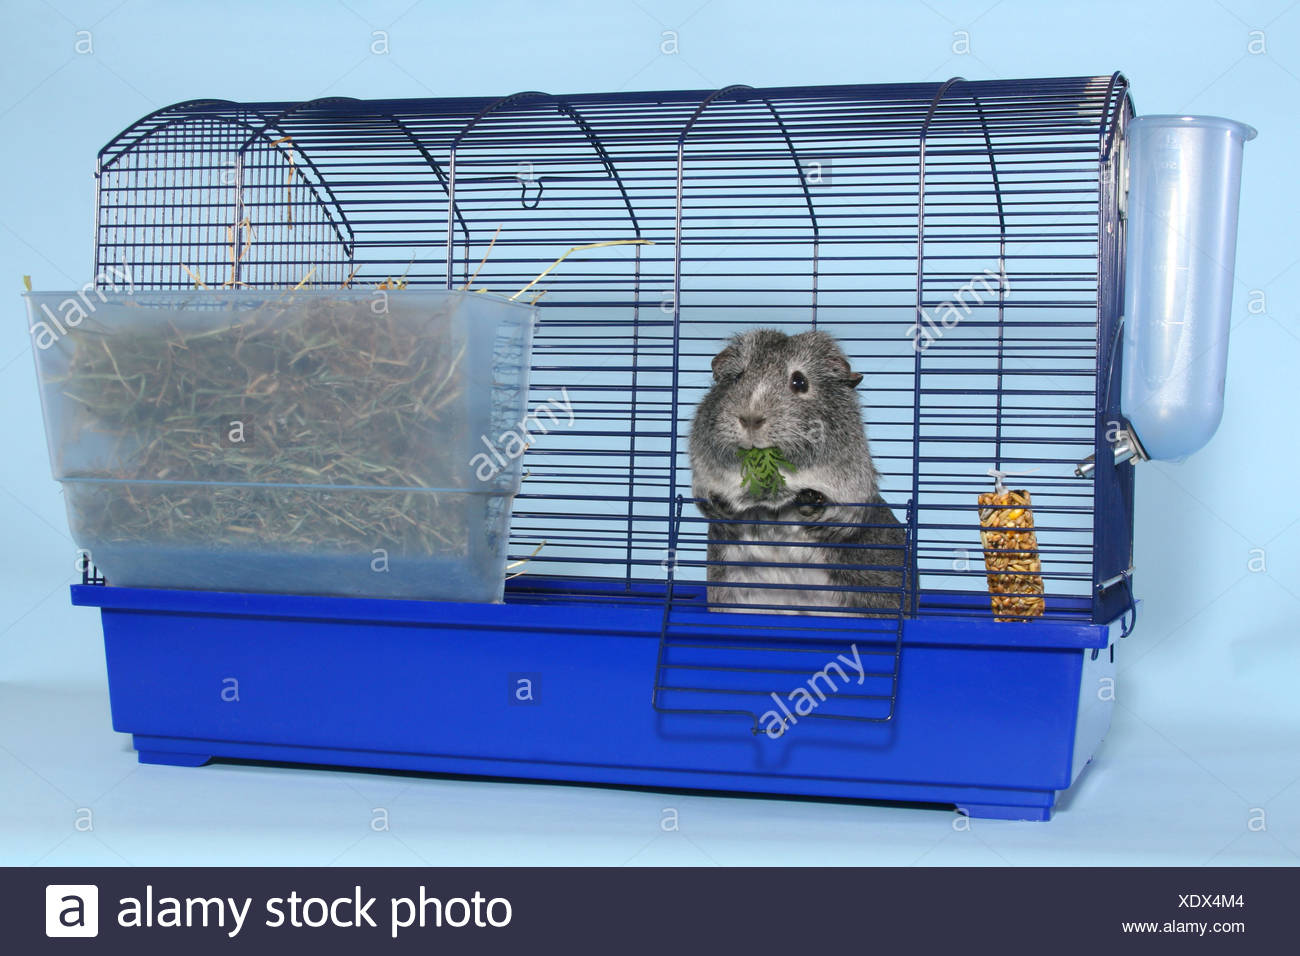 Best Guinea Pig Cage Stock Photos & Guinea Pig Cage Stock Images - Alamy IH97